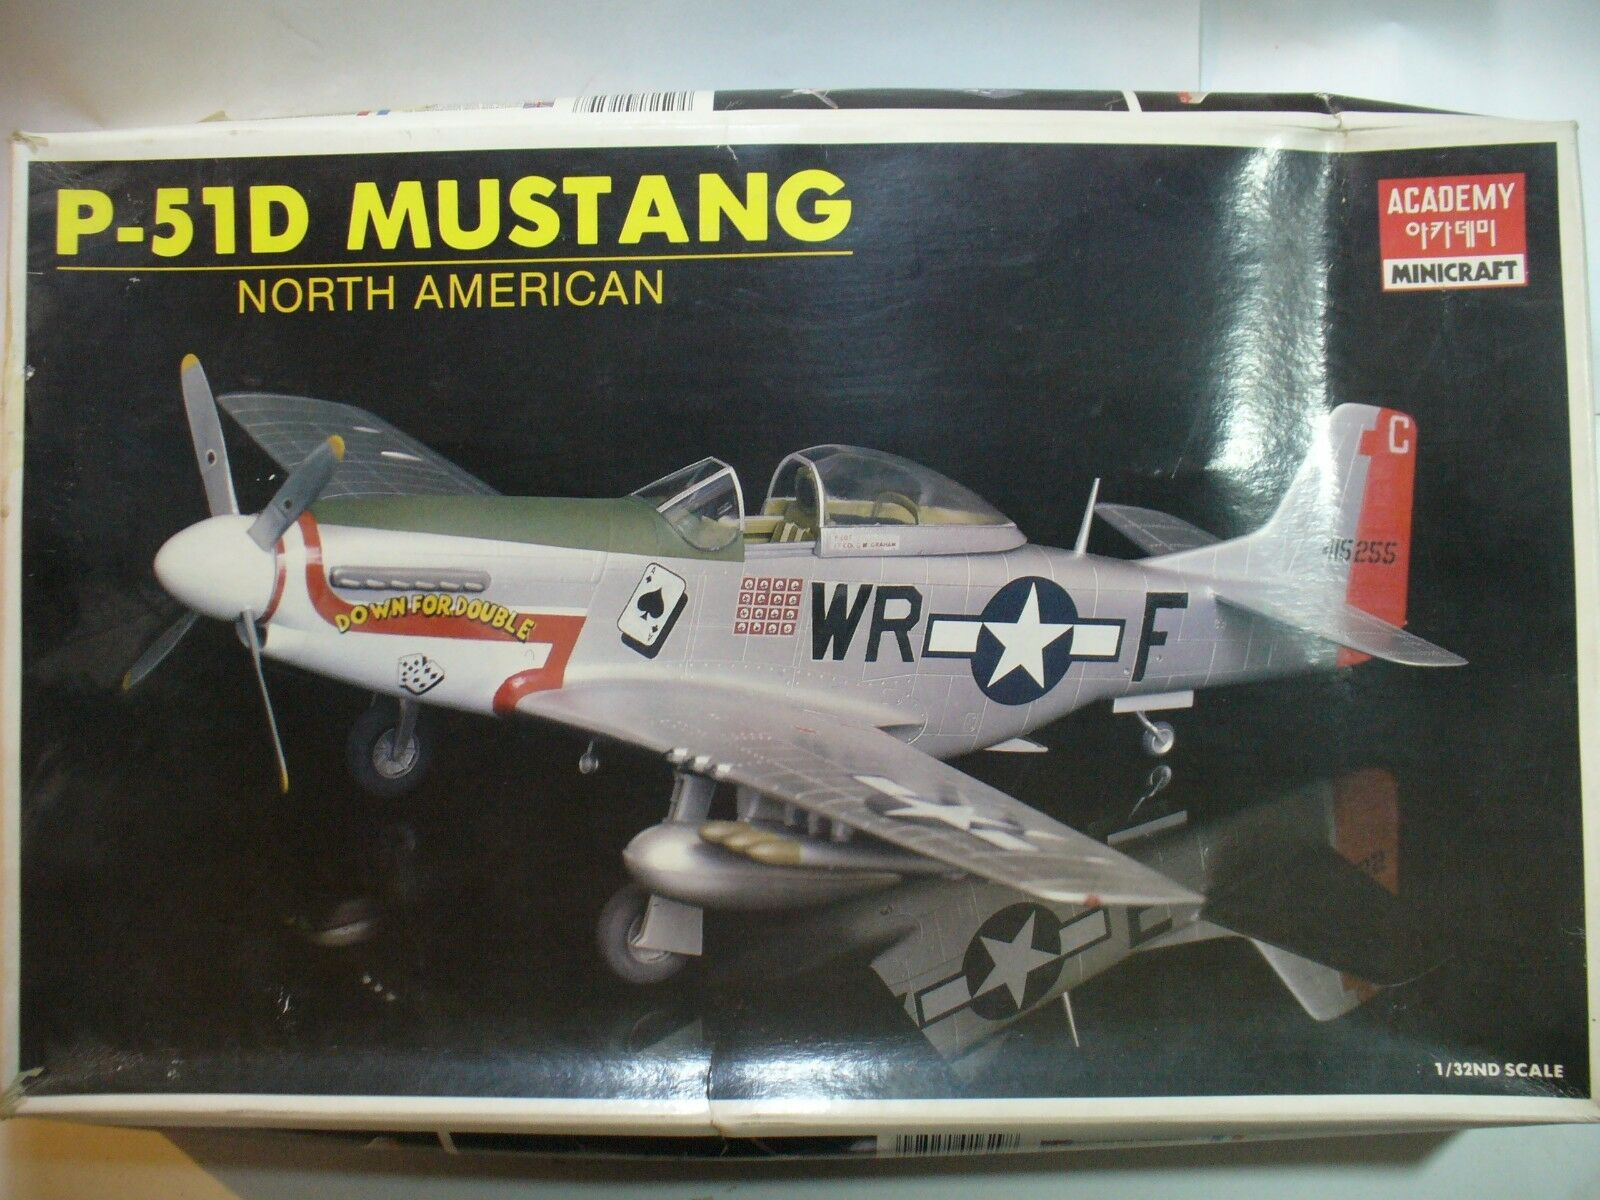 P-51D MUSTANG  1 32 Accademy  scatola 41,5x26x6 cm